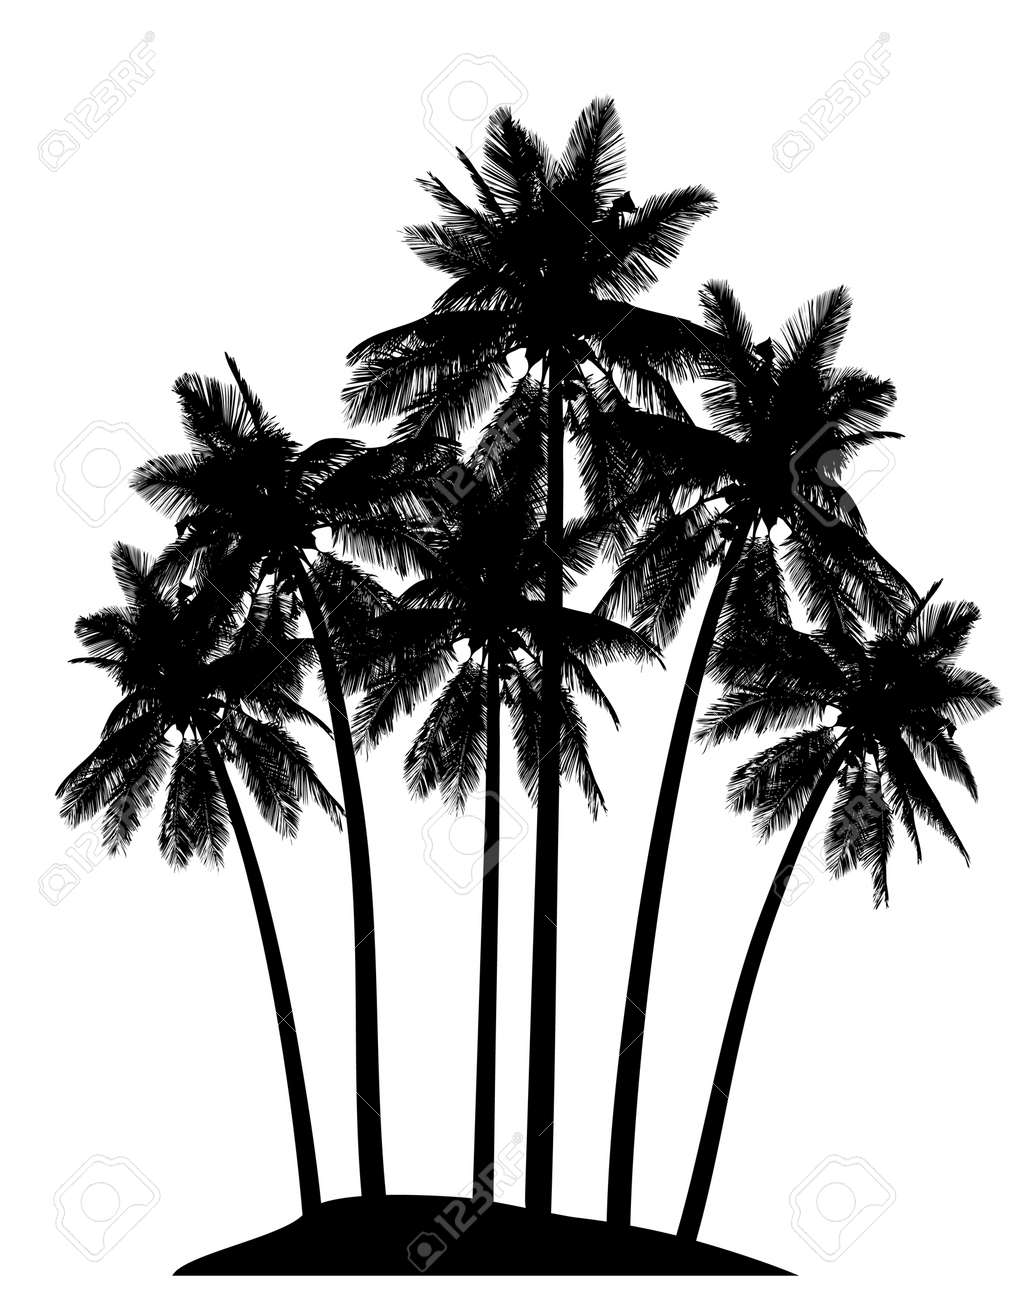 editable vector illustration of palm tree silhouettes royalty free rh 123rf com free architecture tree vectors free tree vectors for photoshop